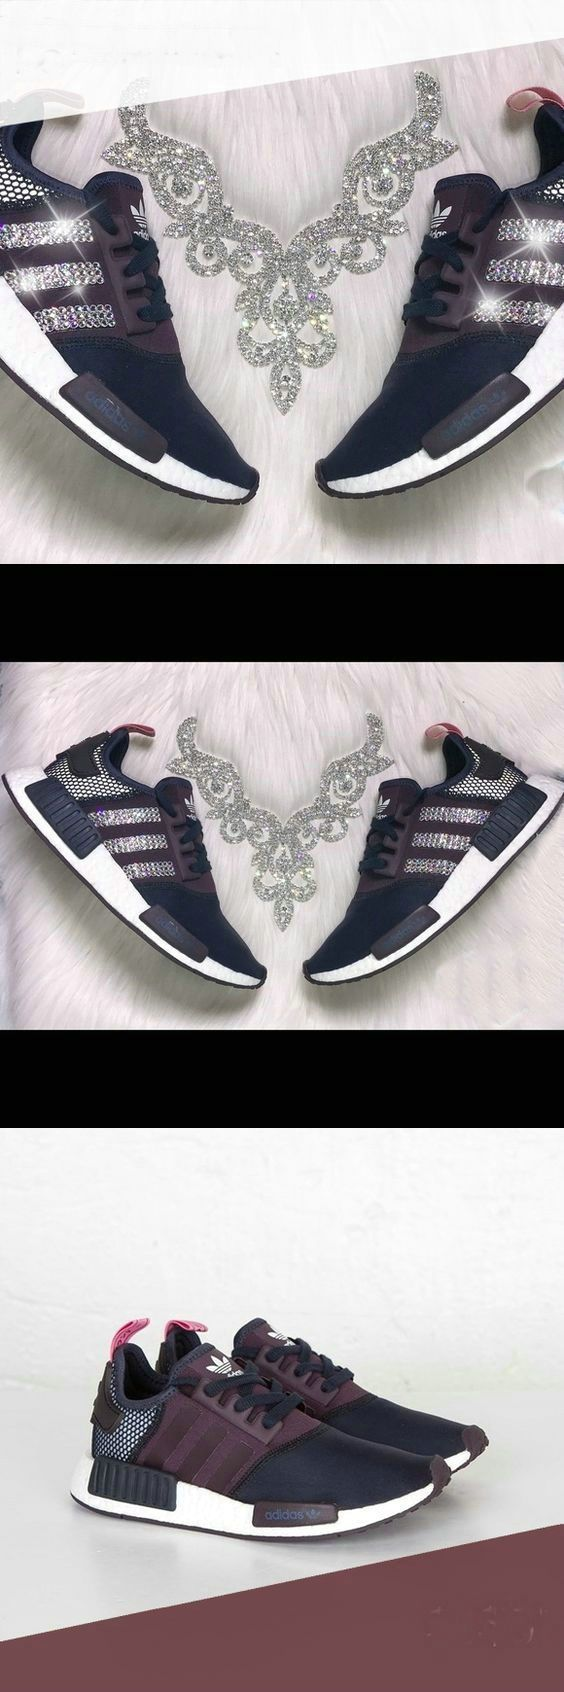 Over Half Off New Arrival 2017 June Authentic Adidas NMD Sneakers Black Gold White Adidas Sripes logos SWAROVSKI Crystals Shoes 2017